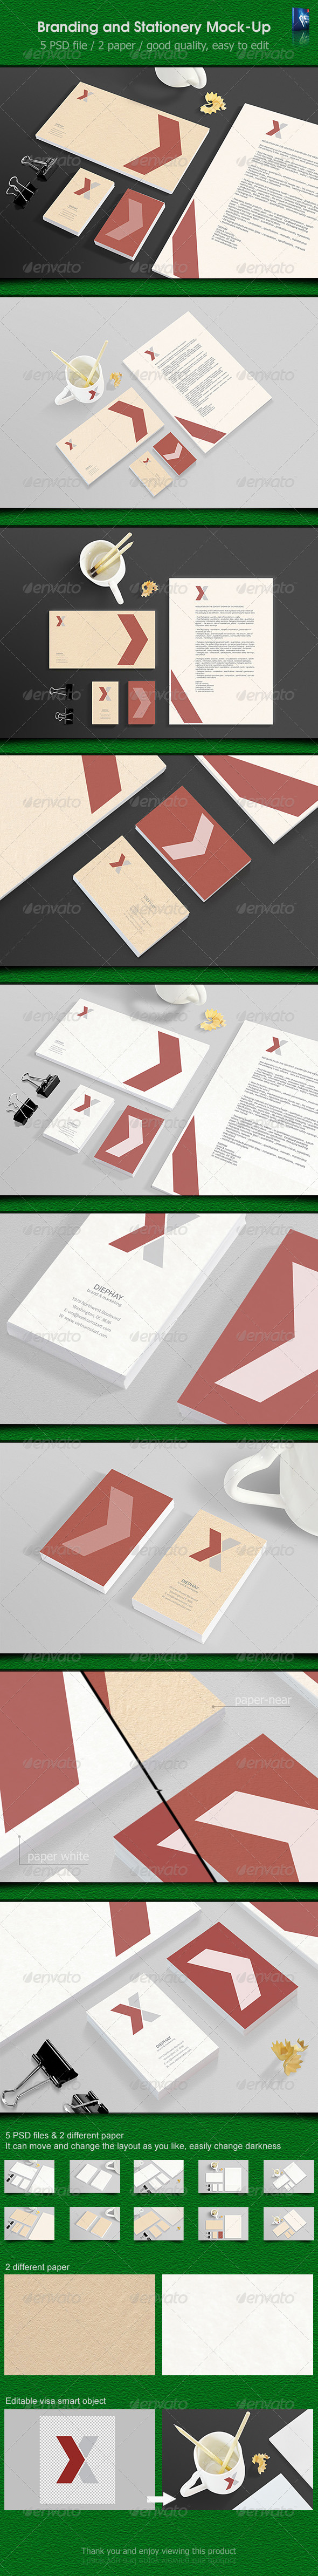 Stationery Mockups  #GraphicRiver         Stationery / Branding Mock-Up  	 - 5 Psd files  	 - Good quality, easy to edit  	 - Change can easily edit and smart  	 - Changeable background (automatic perspective)  	 - Resolution 3000×2000 px / logo muck-up 2200×1500 px  	 - Changeable sides appearance  	 - Including application design:  	 - Letterhead (A4)  	 - Business card (90×55 mm) & (55×90 mm)  	 - Envelope (120×220 mm)  	 - Cup  	 - Pencils  	 - Slecho                     Created: 28…